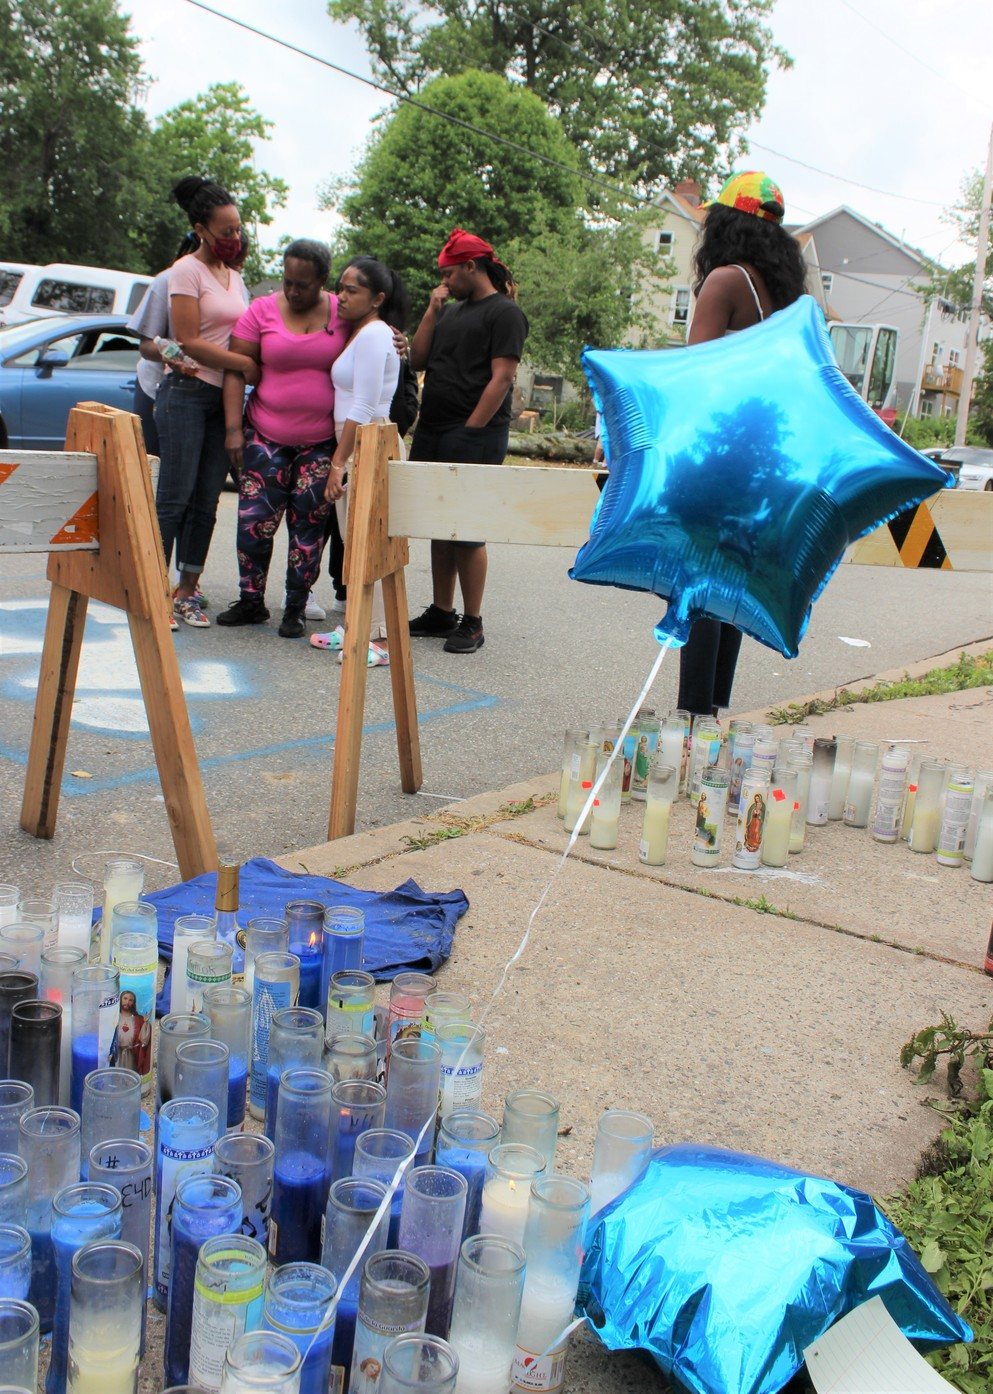 A Family Mourns in Spring Valley